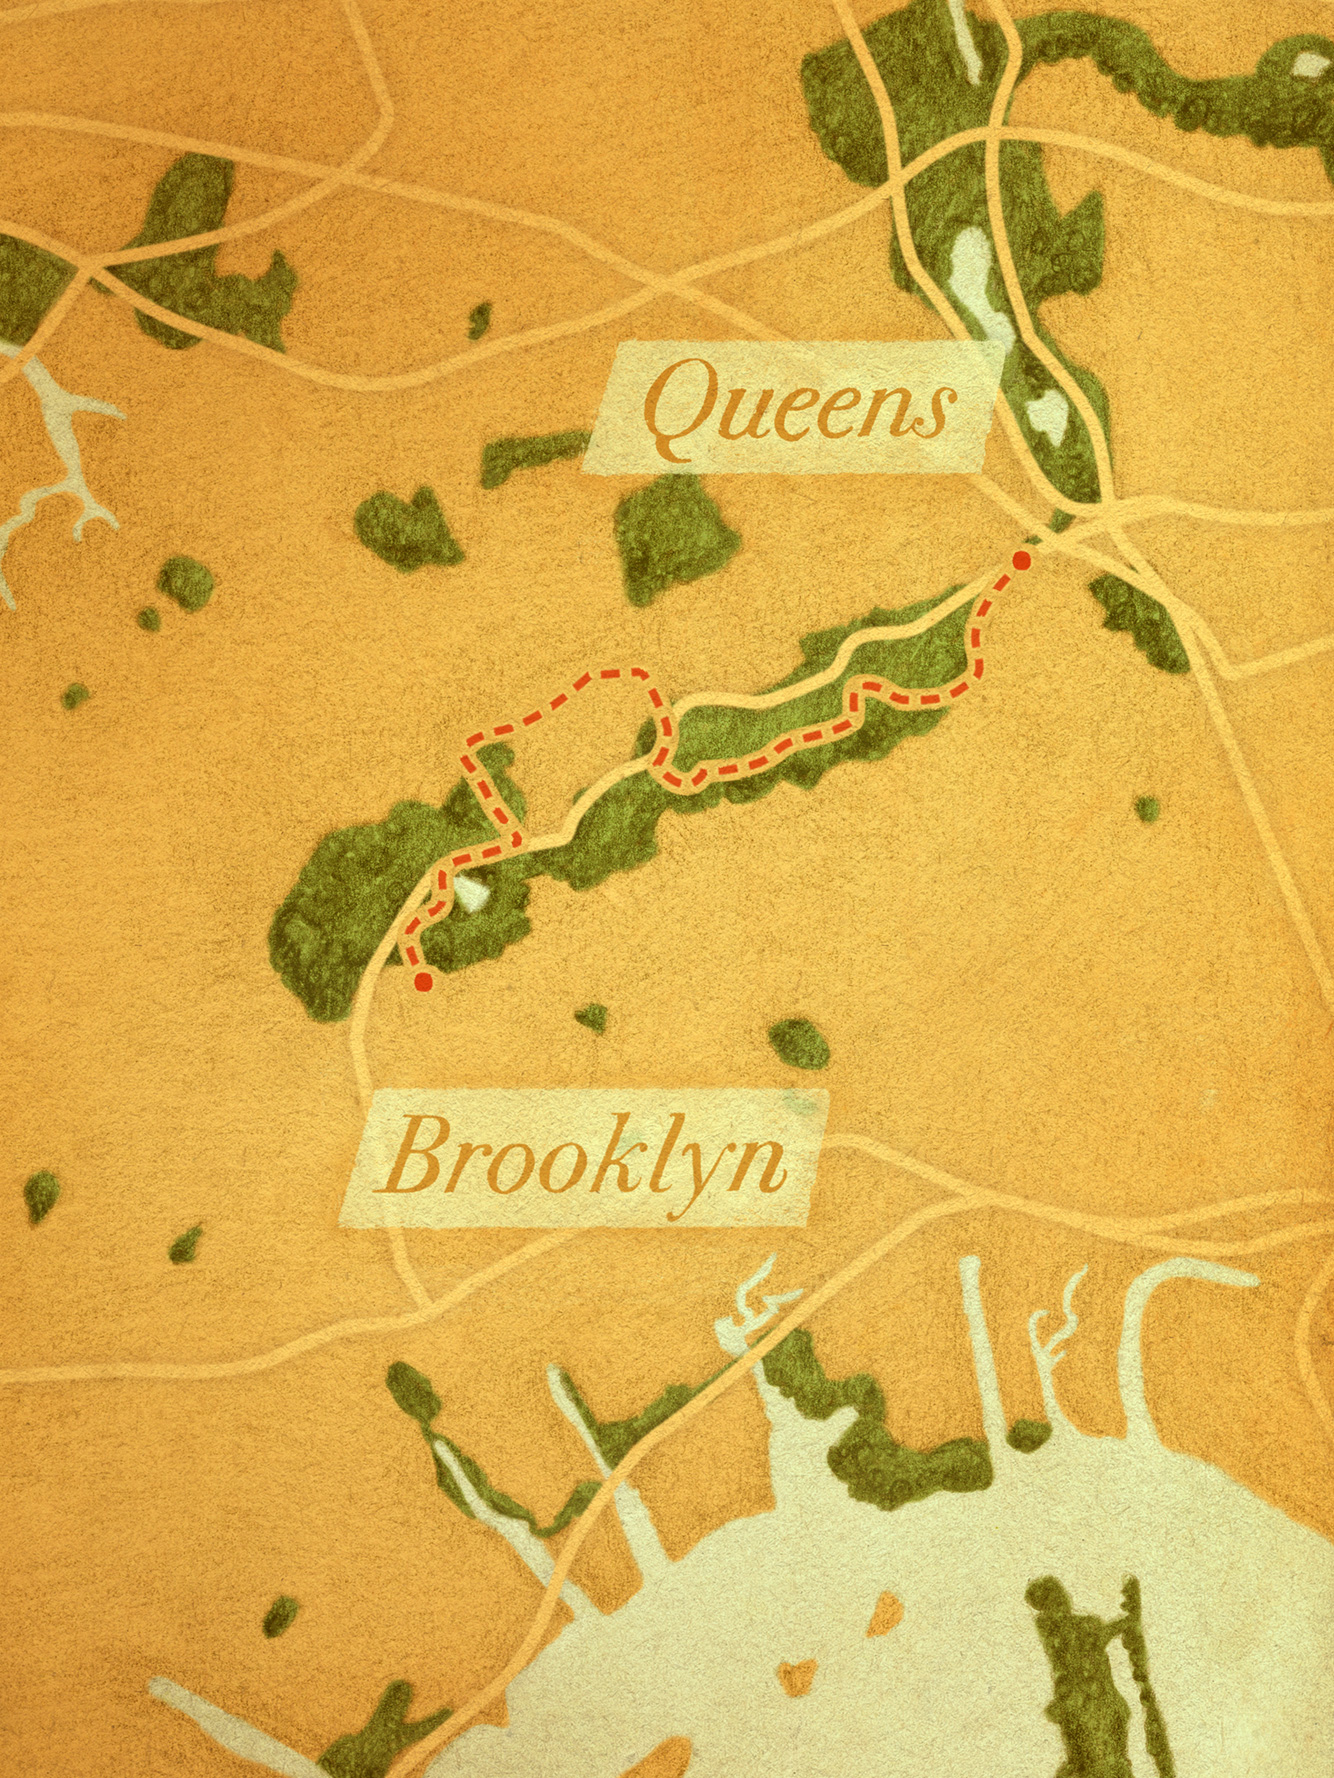 Highland Park to Forest Park Trail (Brooklyn/Queens)